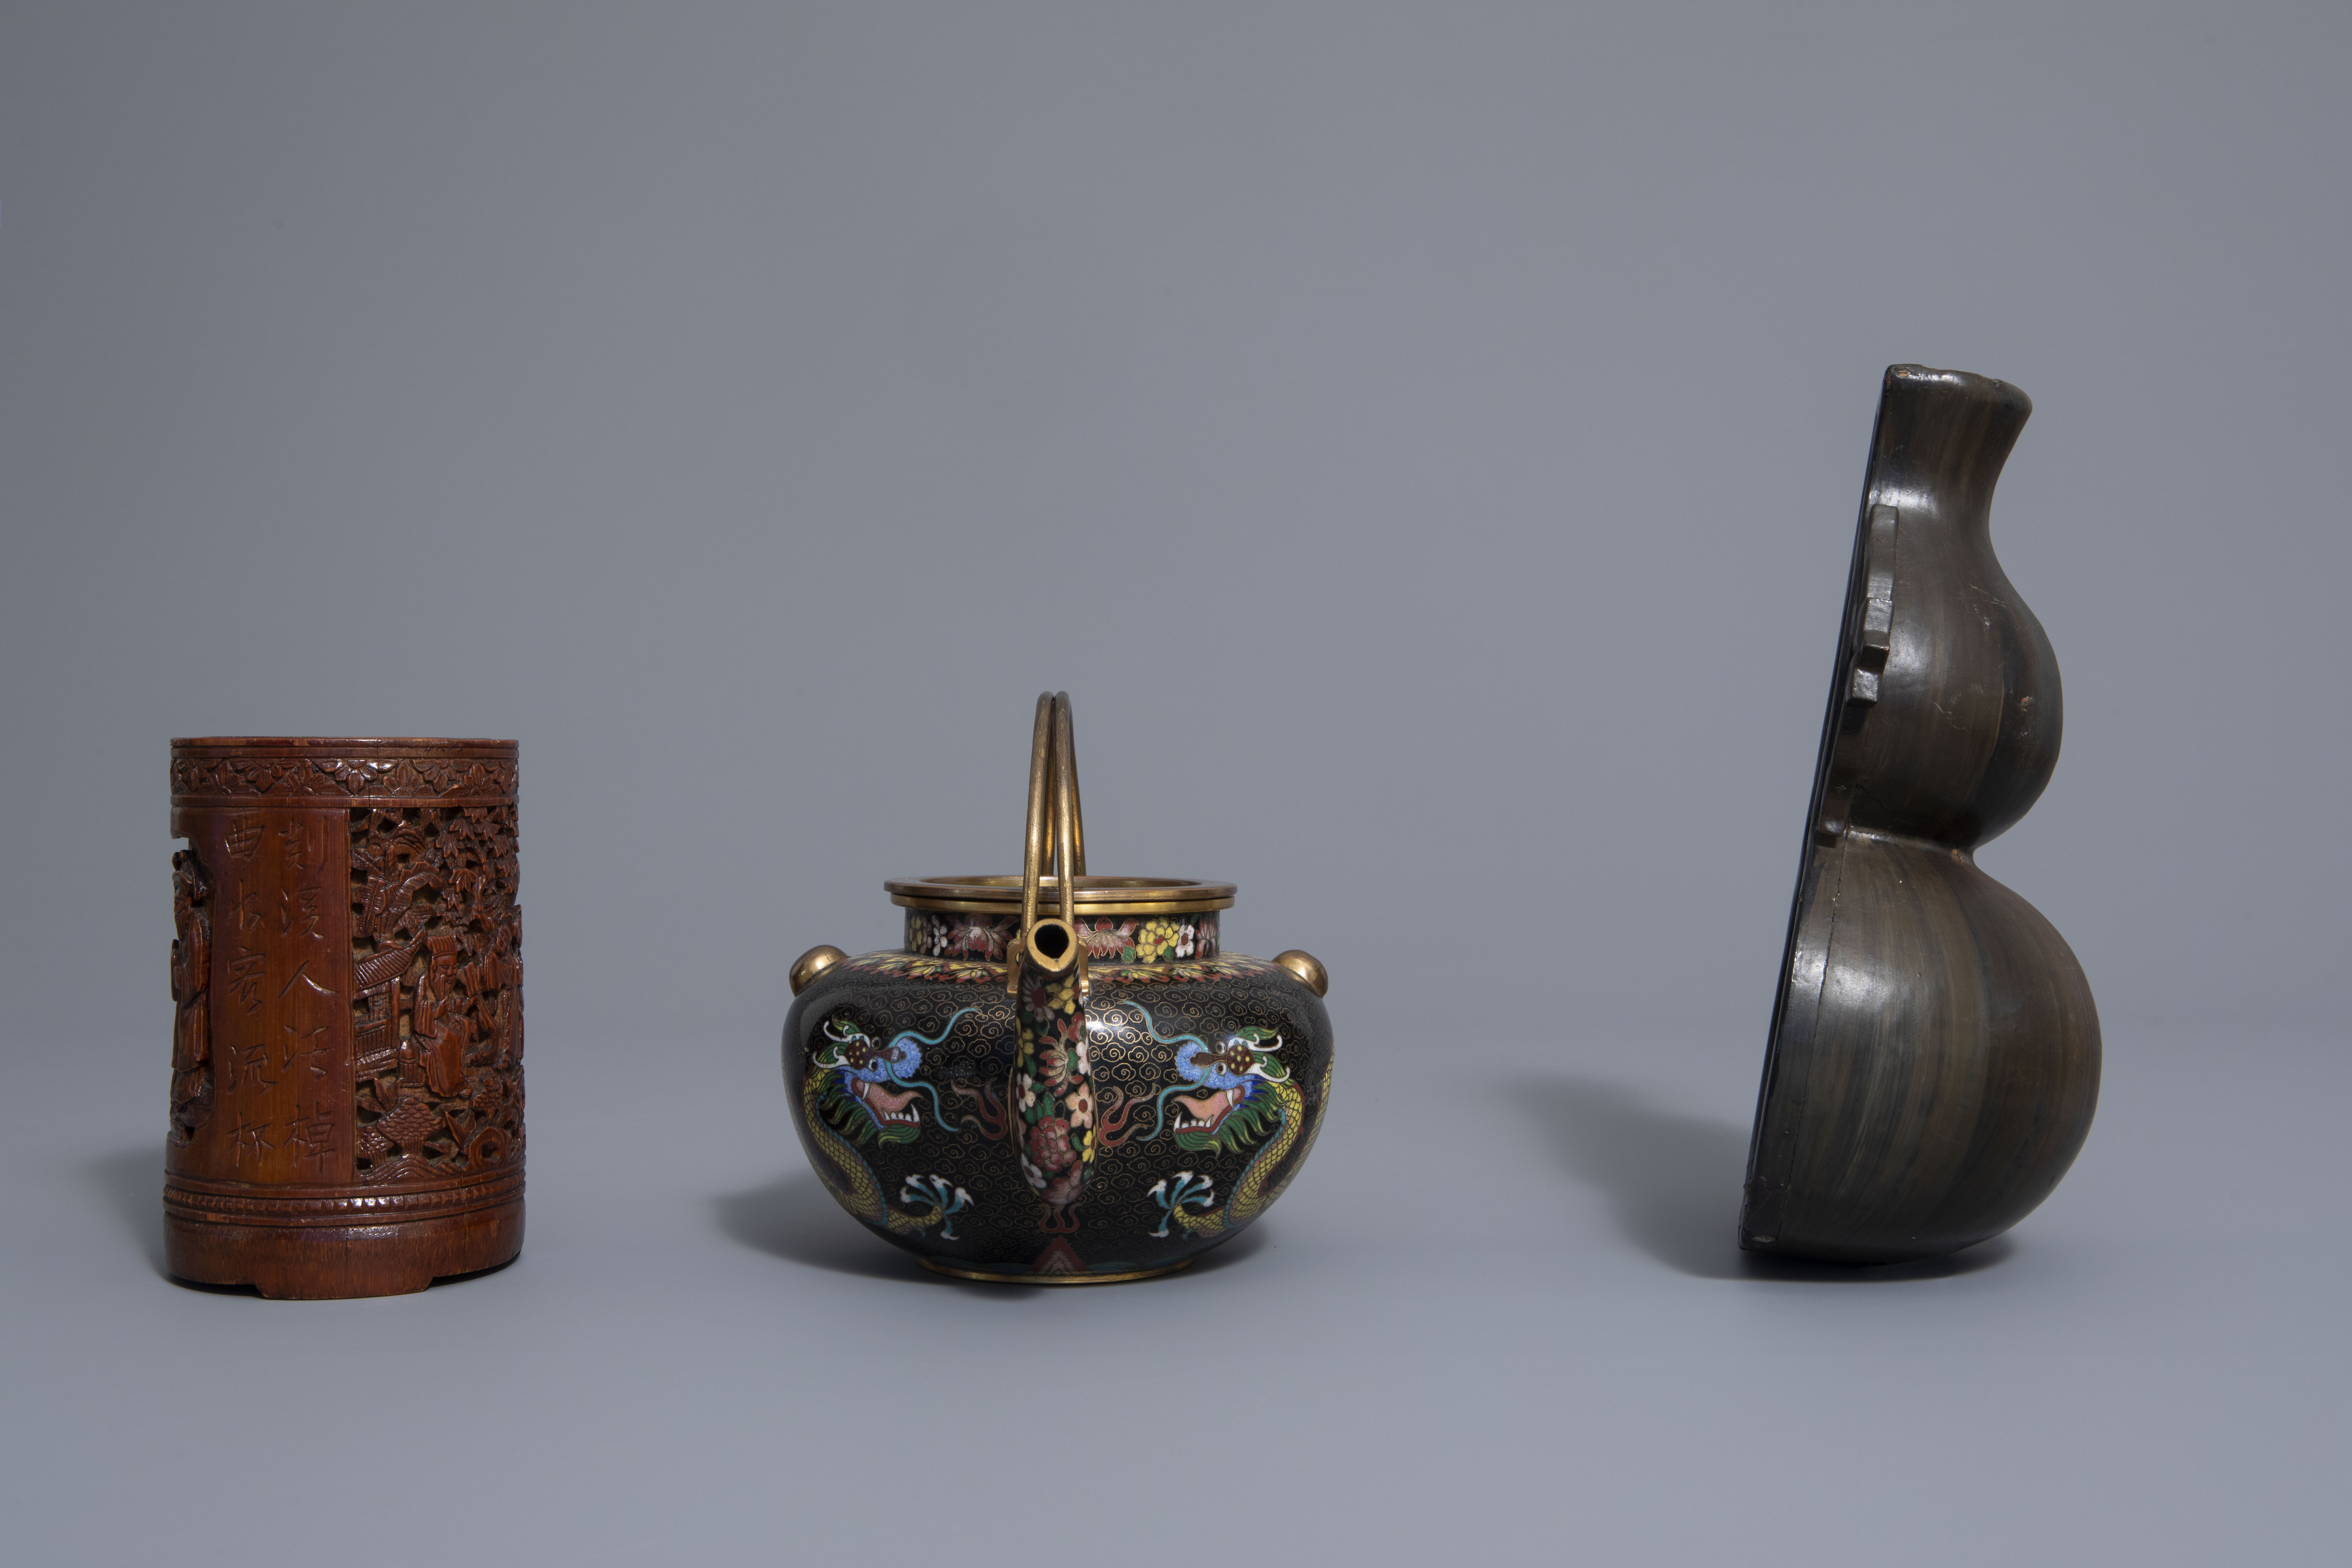 A Chinese tea block, cloisonné teapot, wall vase, bamboo brush pot & 3 red lacquer vases, 20th C. - Image 13 of 16